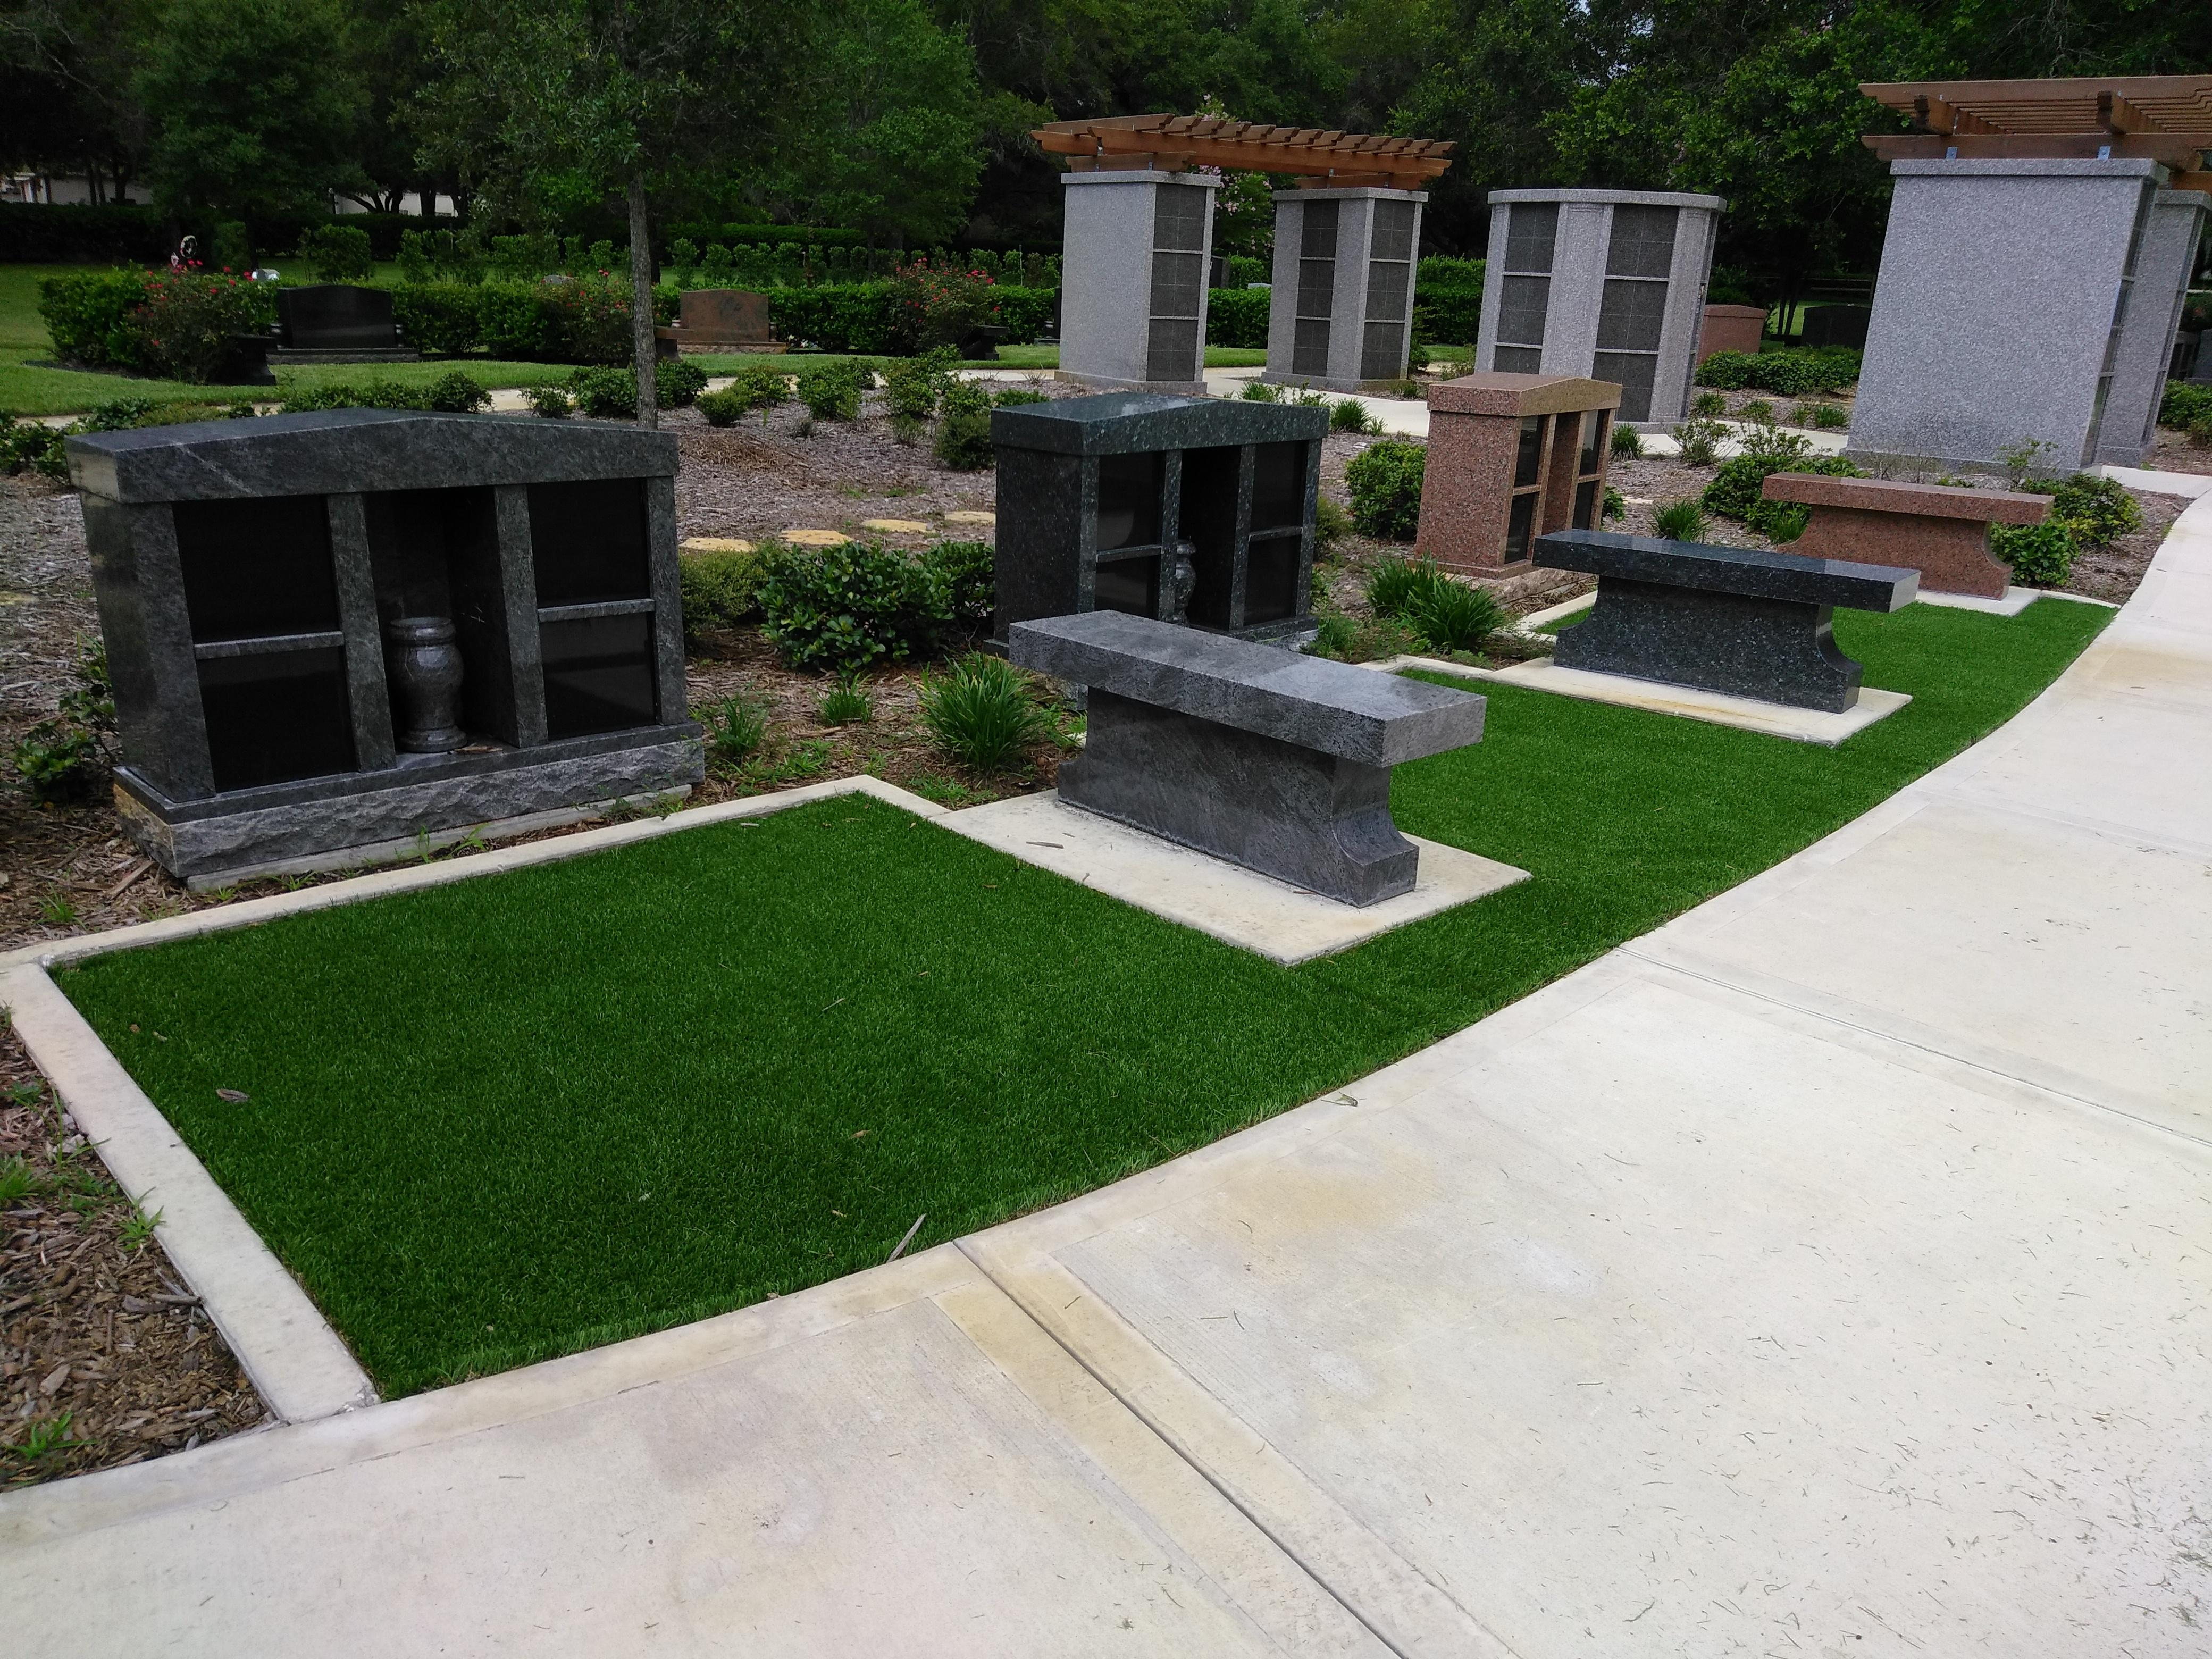 Durable Lawn image 9